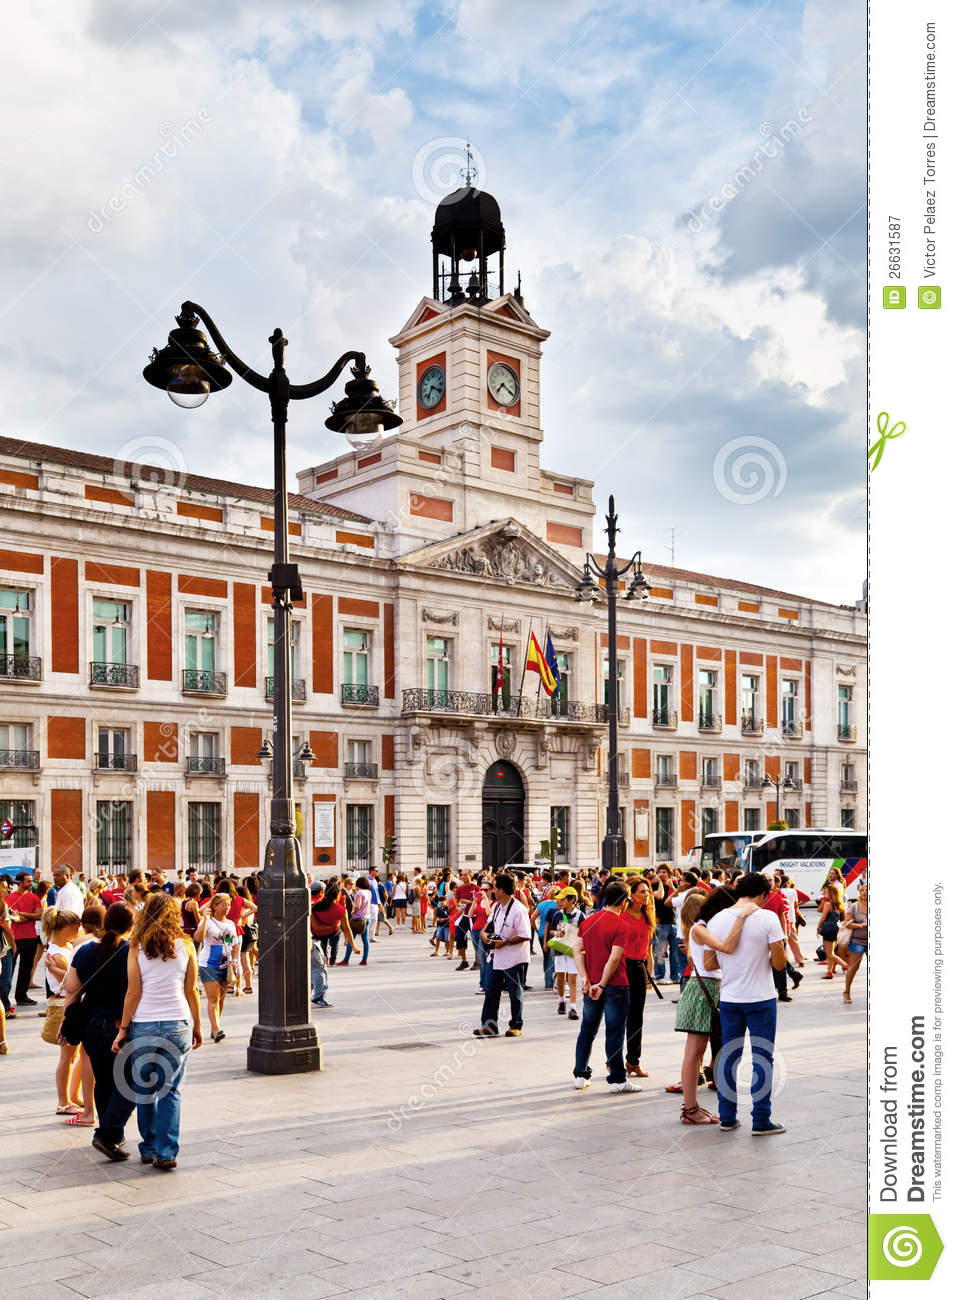 Casa de correos in puerta del sol madrid editorial for Casa de correos